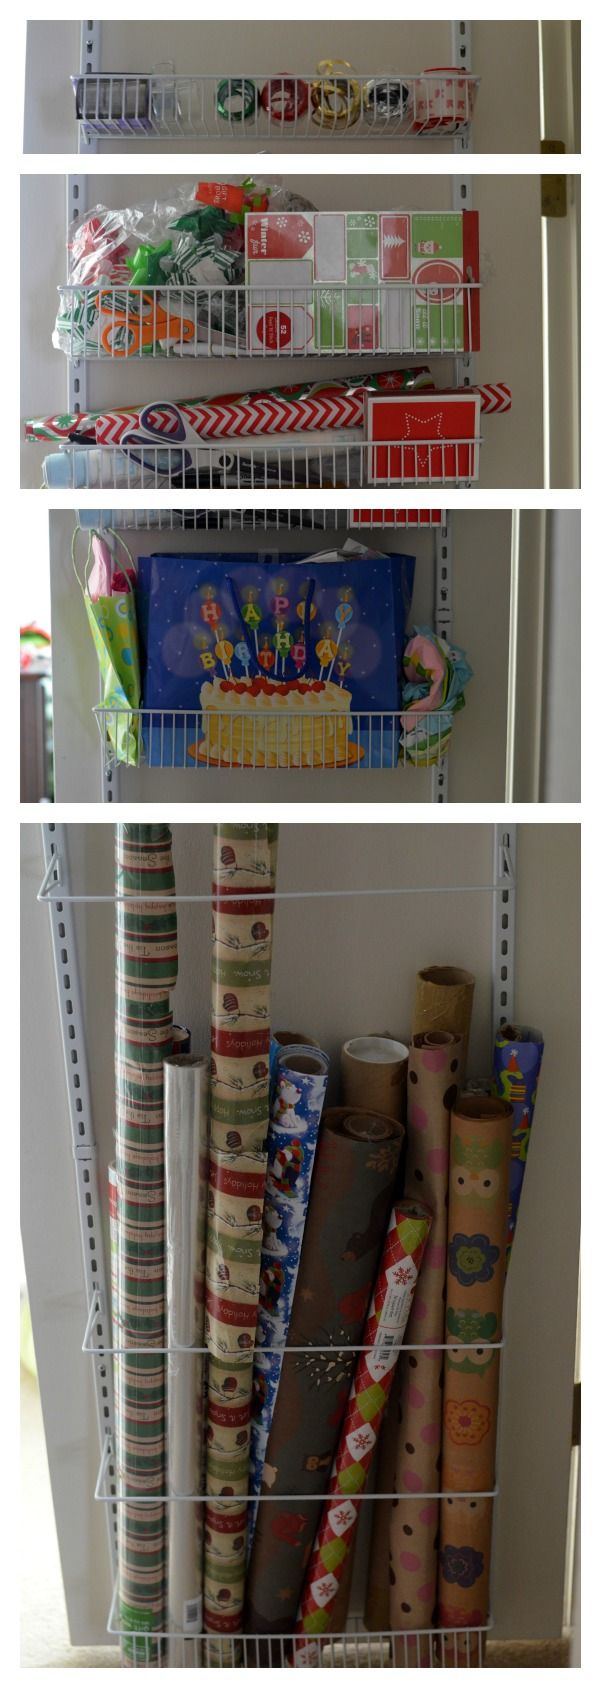 Over The Door Wrapping Paper Storage Solution - ClosetMaid Adjustable Door Rack turned into a gift wrap storage station. Genius!